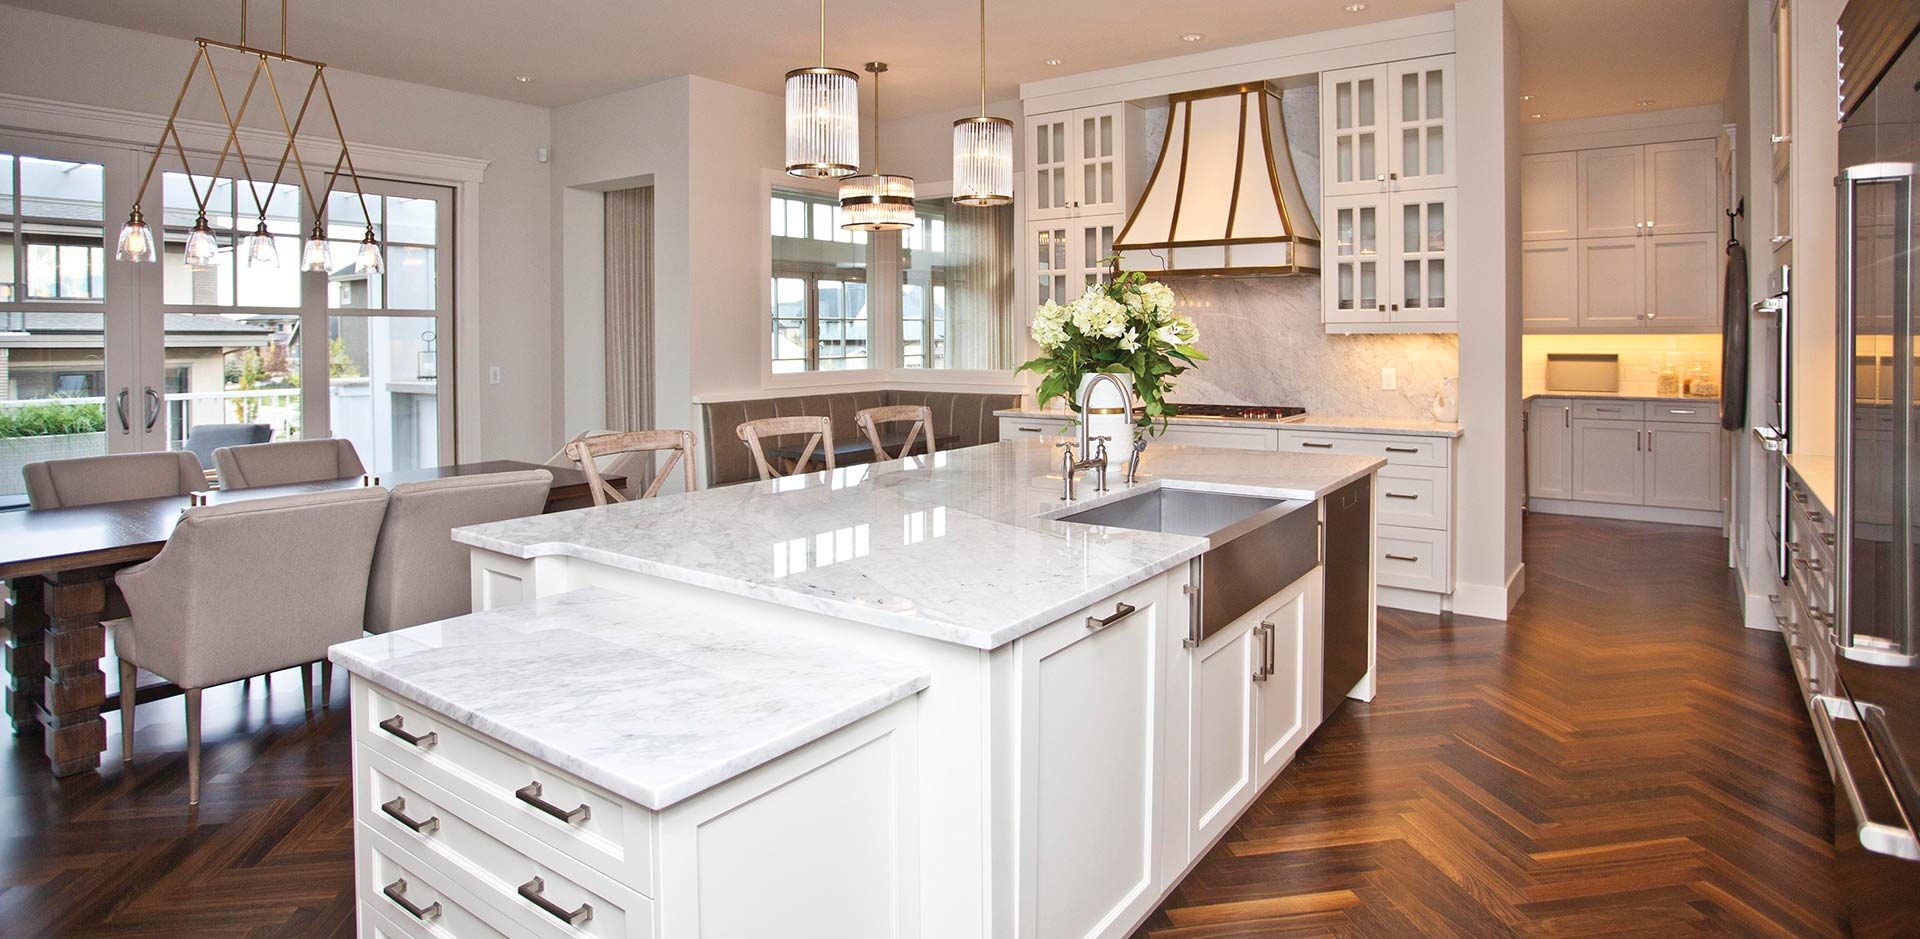 Herringbone Floors and Marble Countertops in a Wolf Custom Kitchen